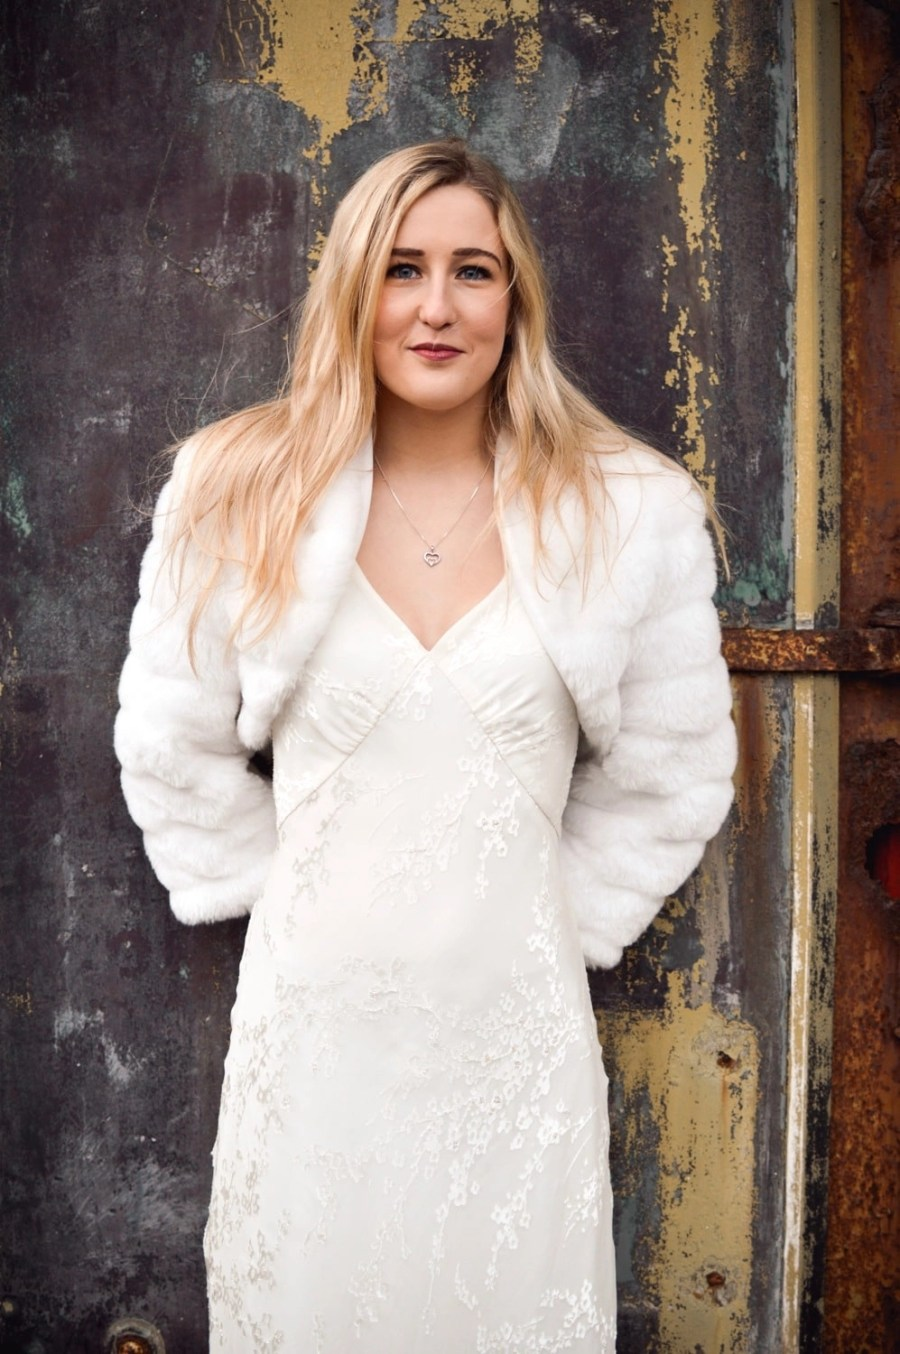 BB42 – faux fur cropped bridal jacket with sleeves on blonde bride with hair down in front of rusty door 2